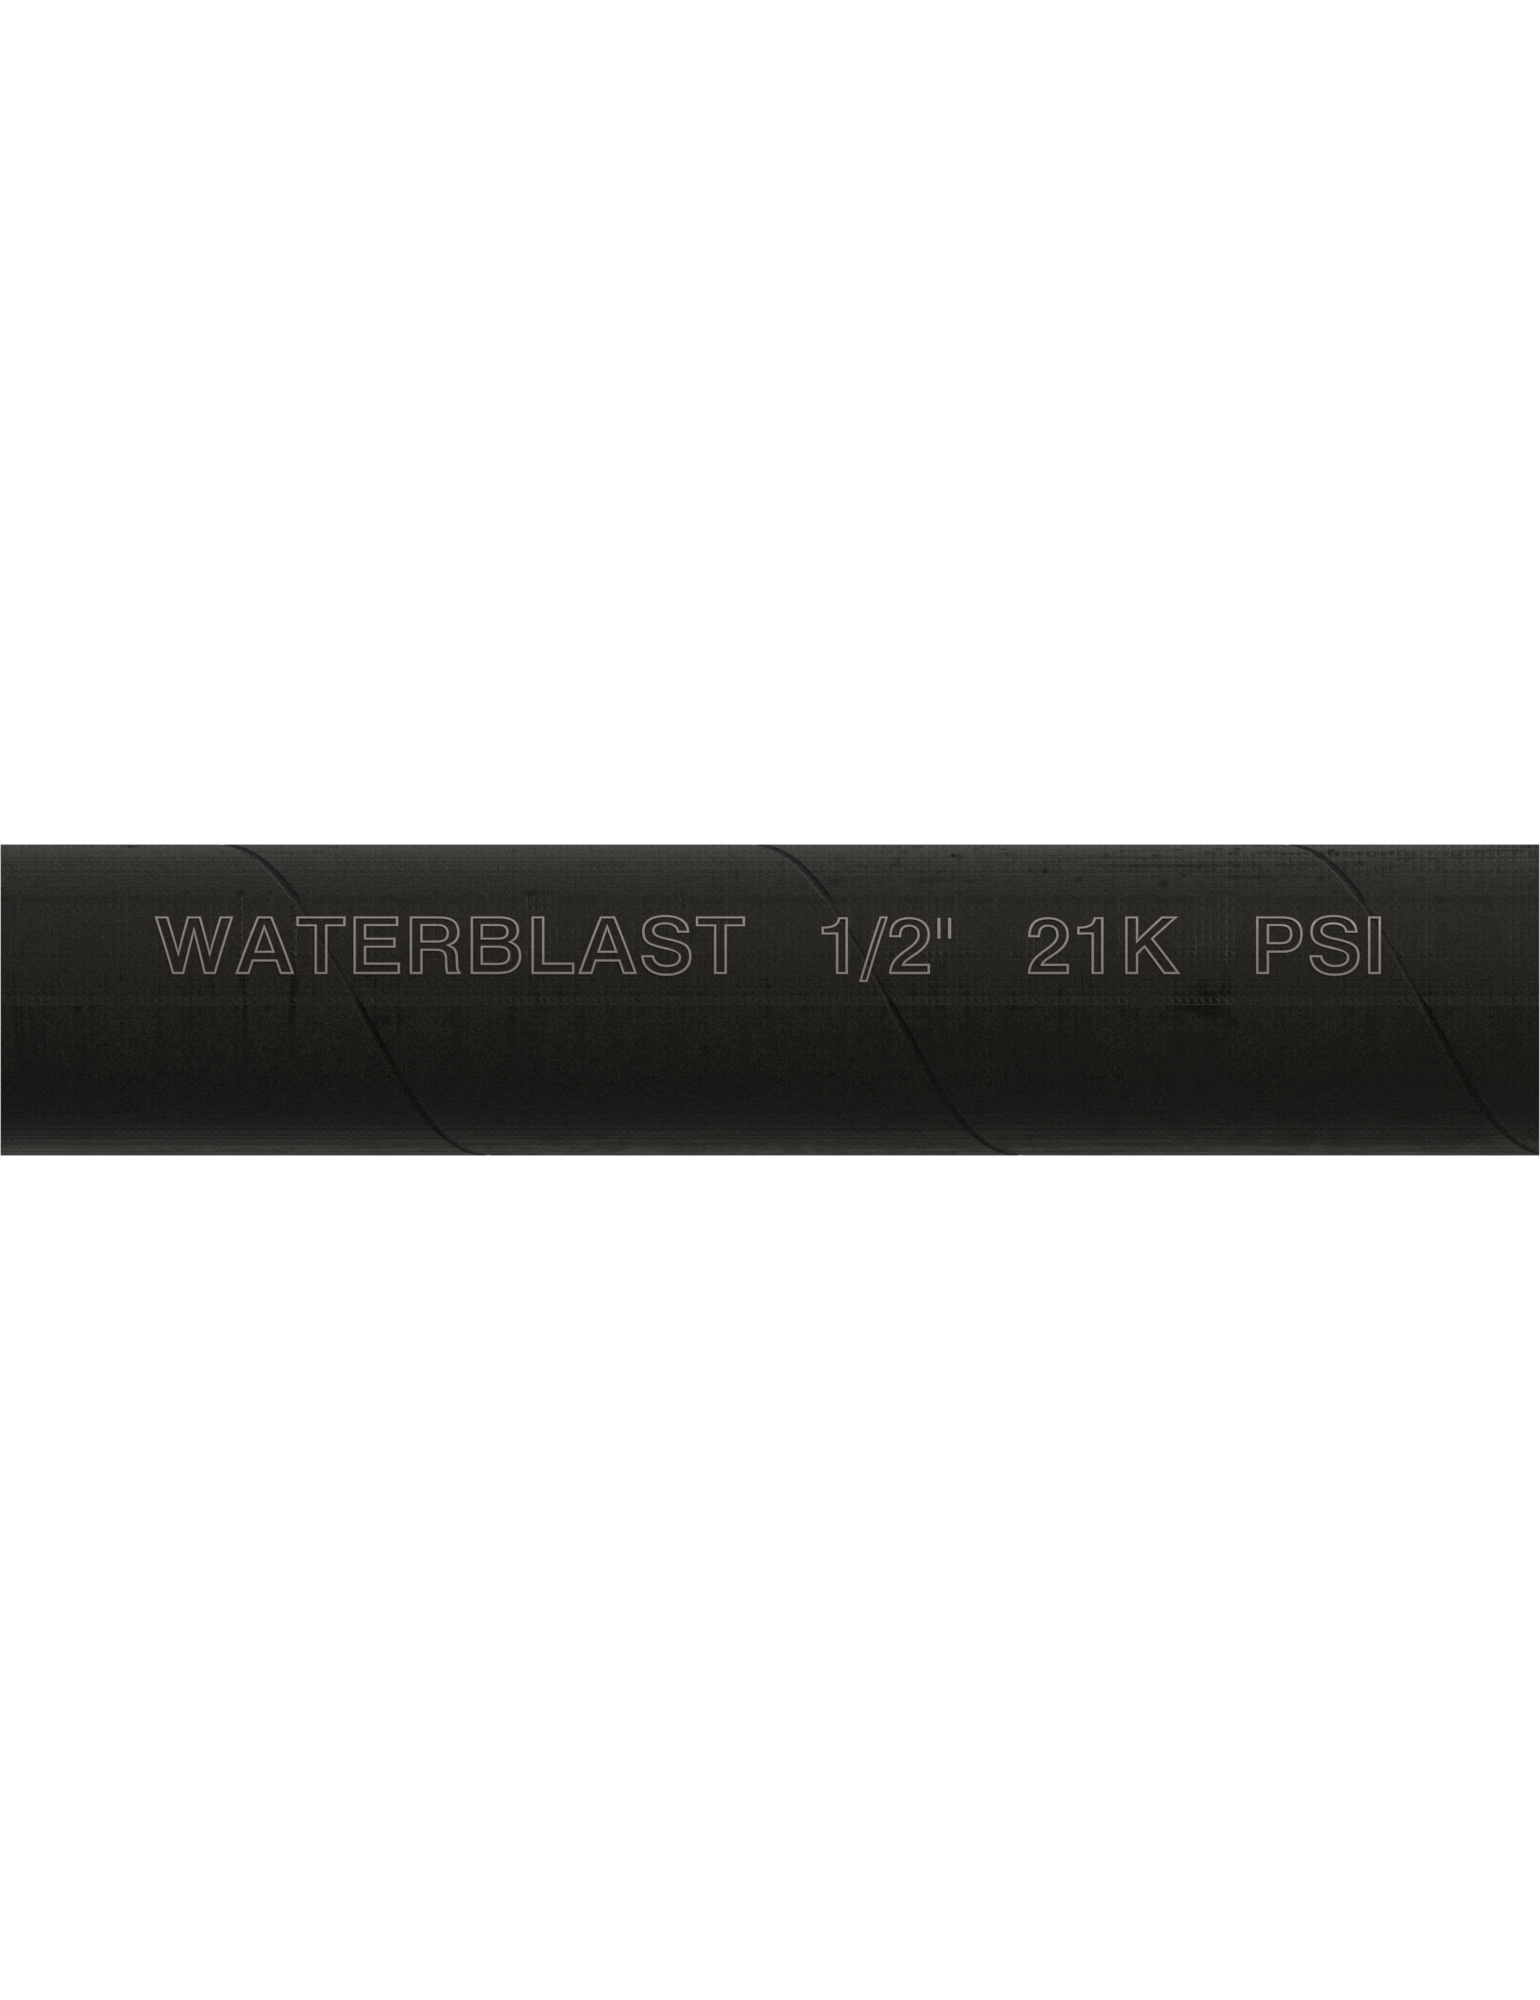 "Hose Type | 1/2"" NPT 21K psi Black Rubber Hose"